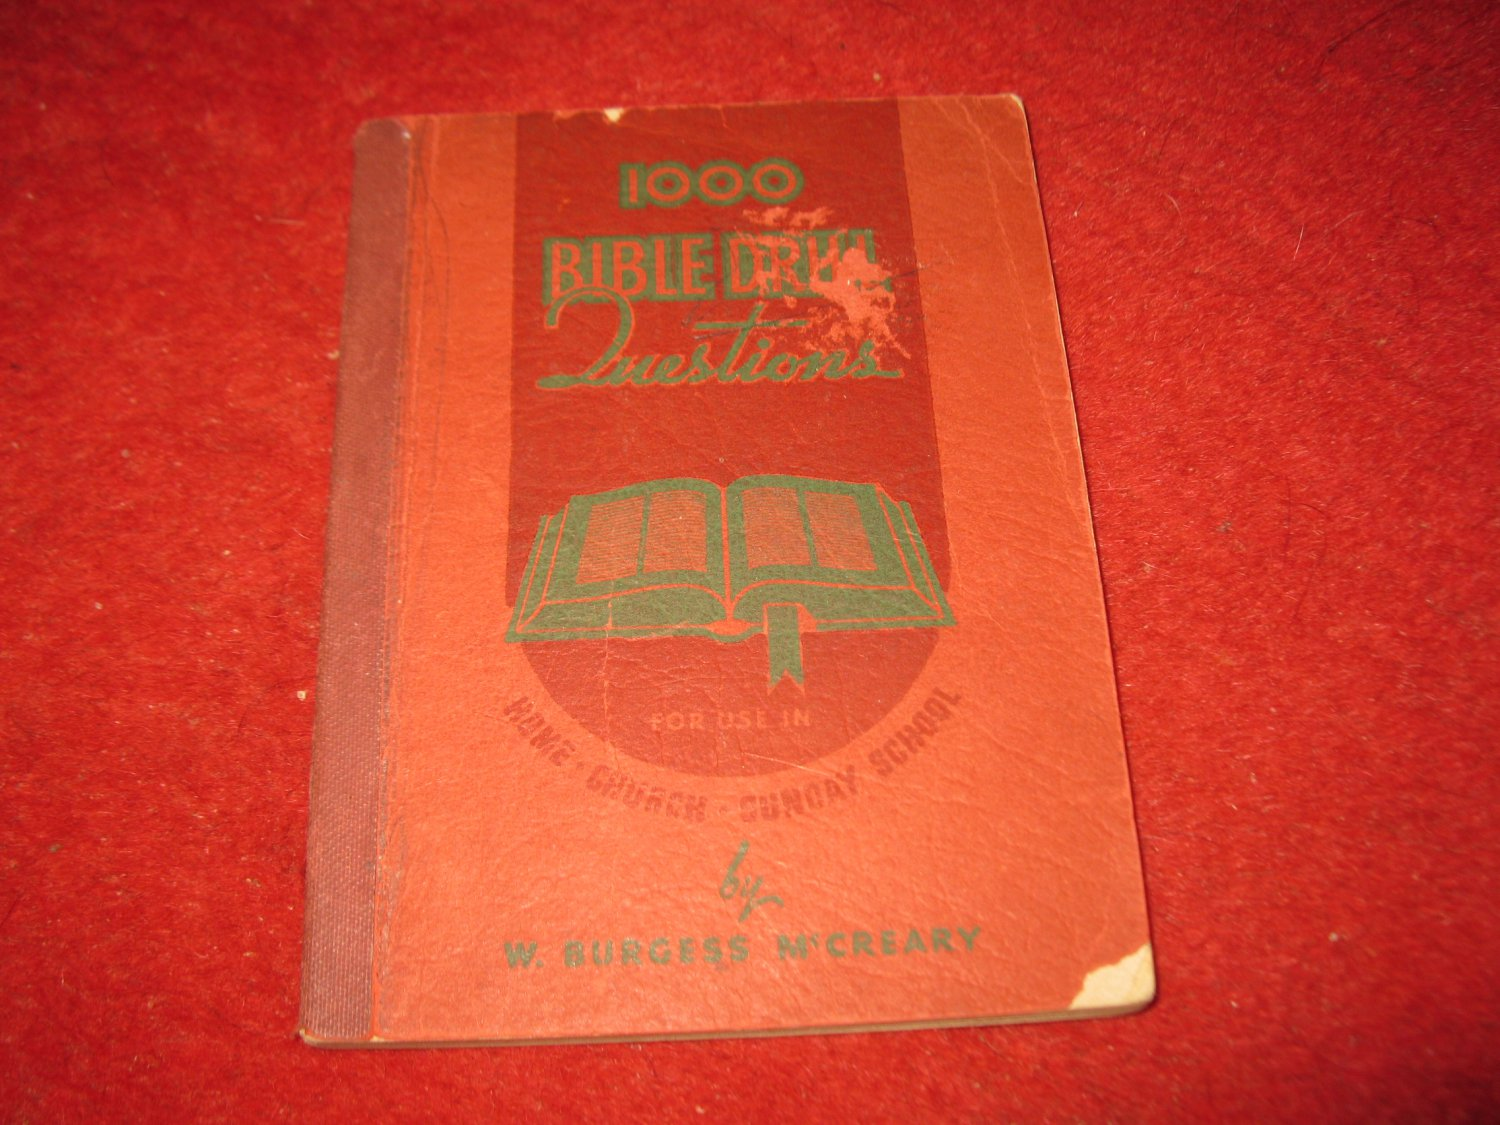 1926 Church book: 100 Bible Drill Questions - by W. Burgess McGreary- paperback